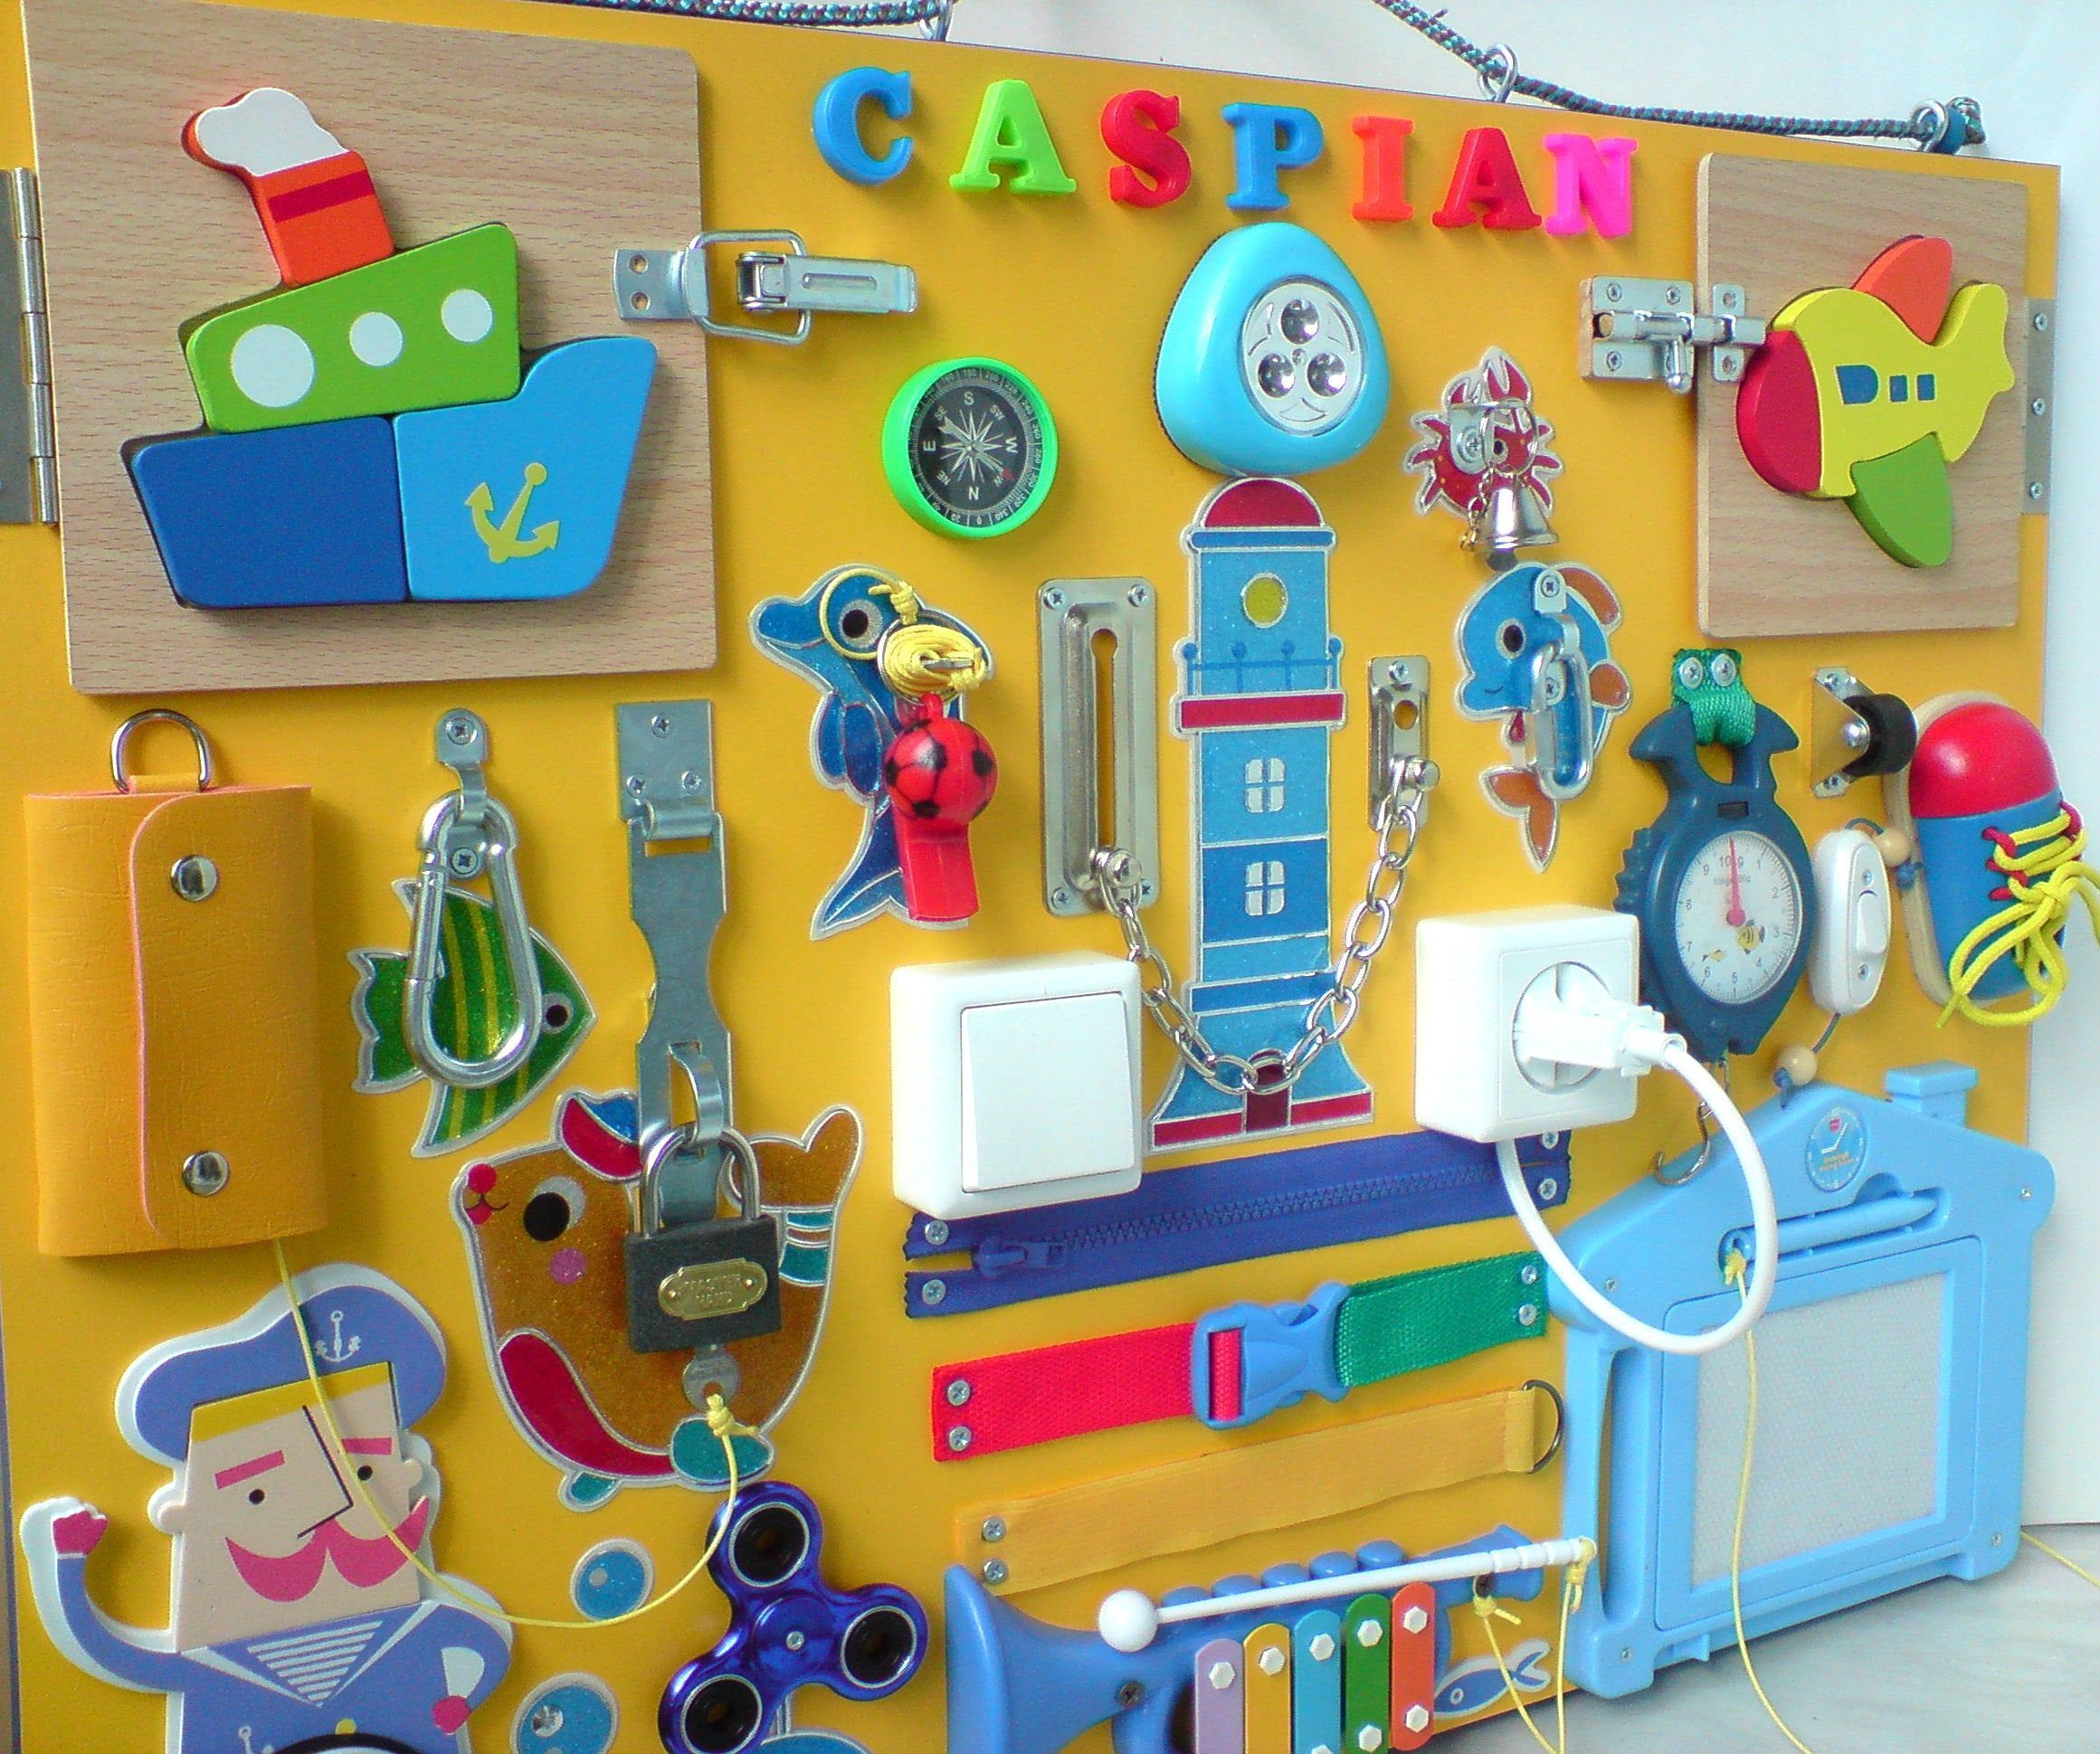 11 meilleures images du tableau idee kdo   Baby Toys, Busy